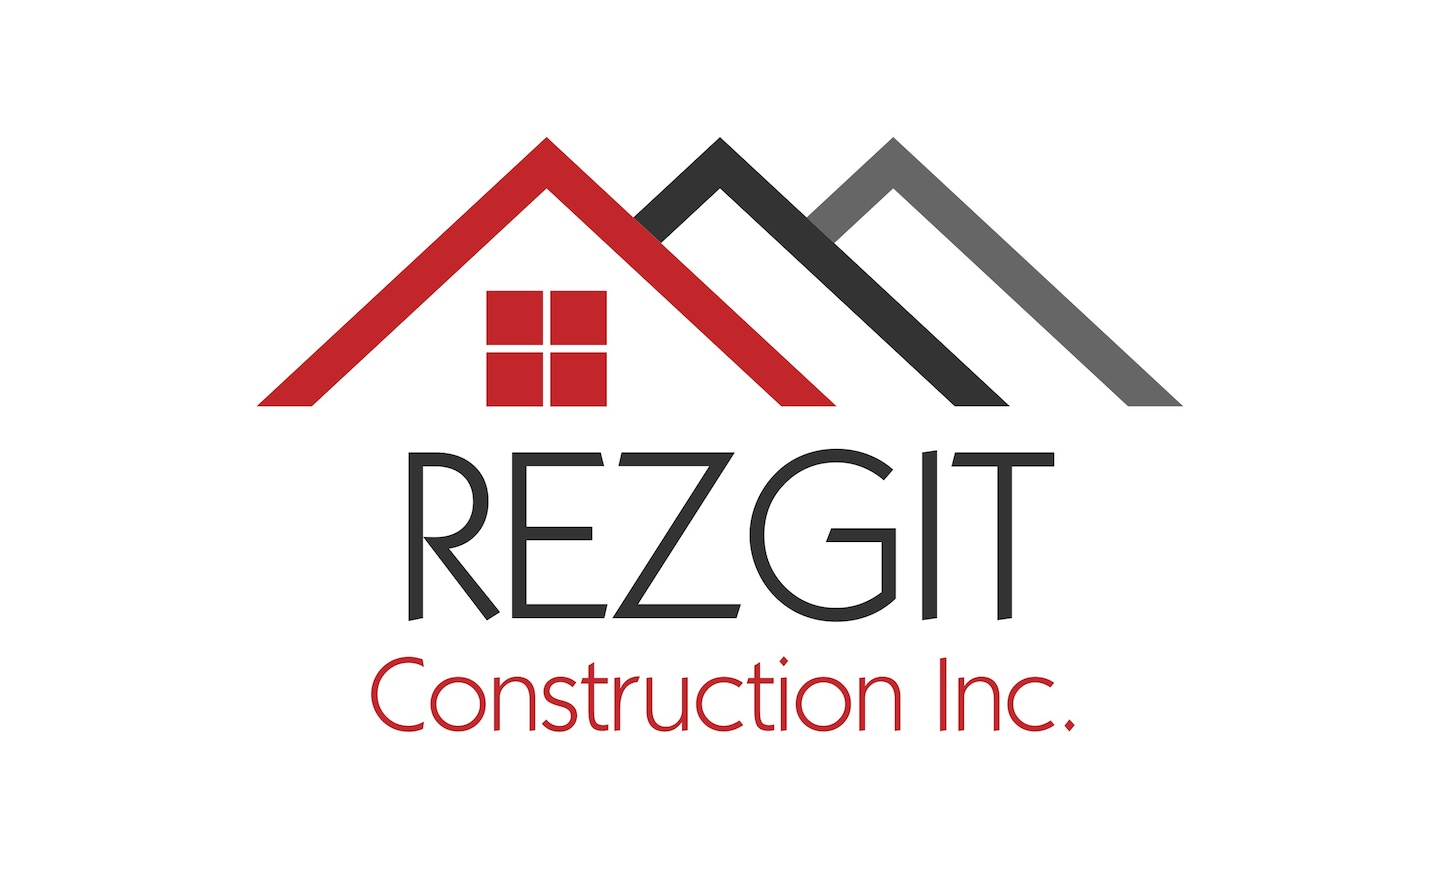 Rezgit Construction